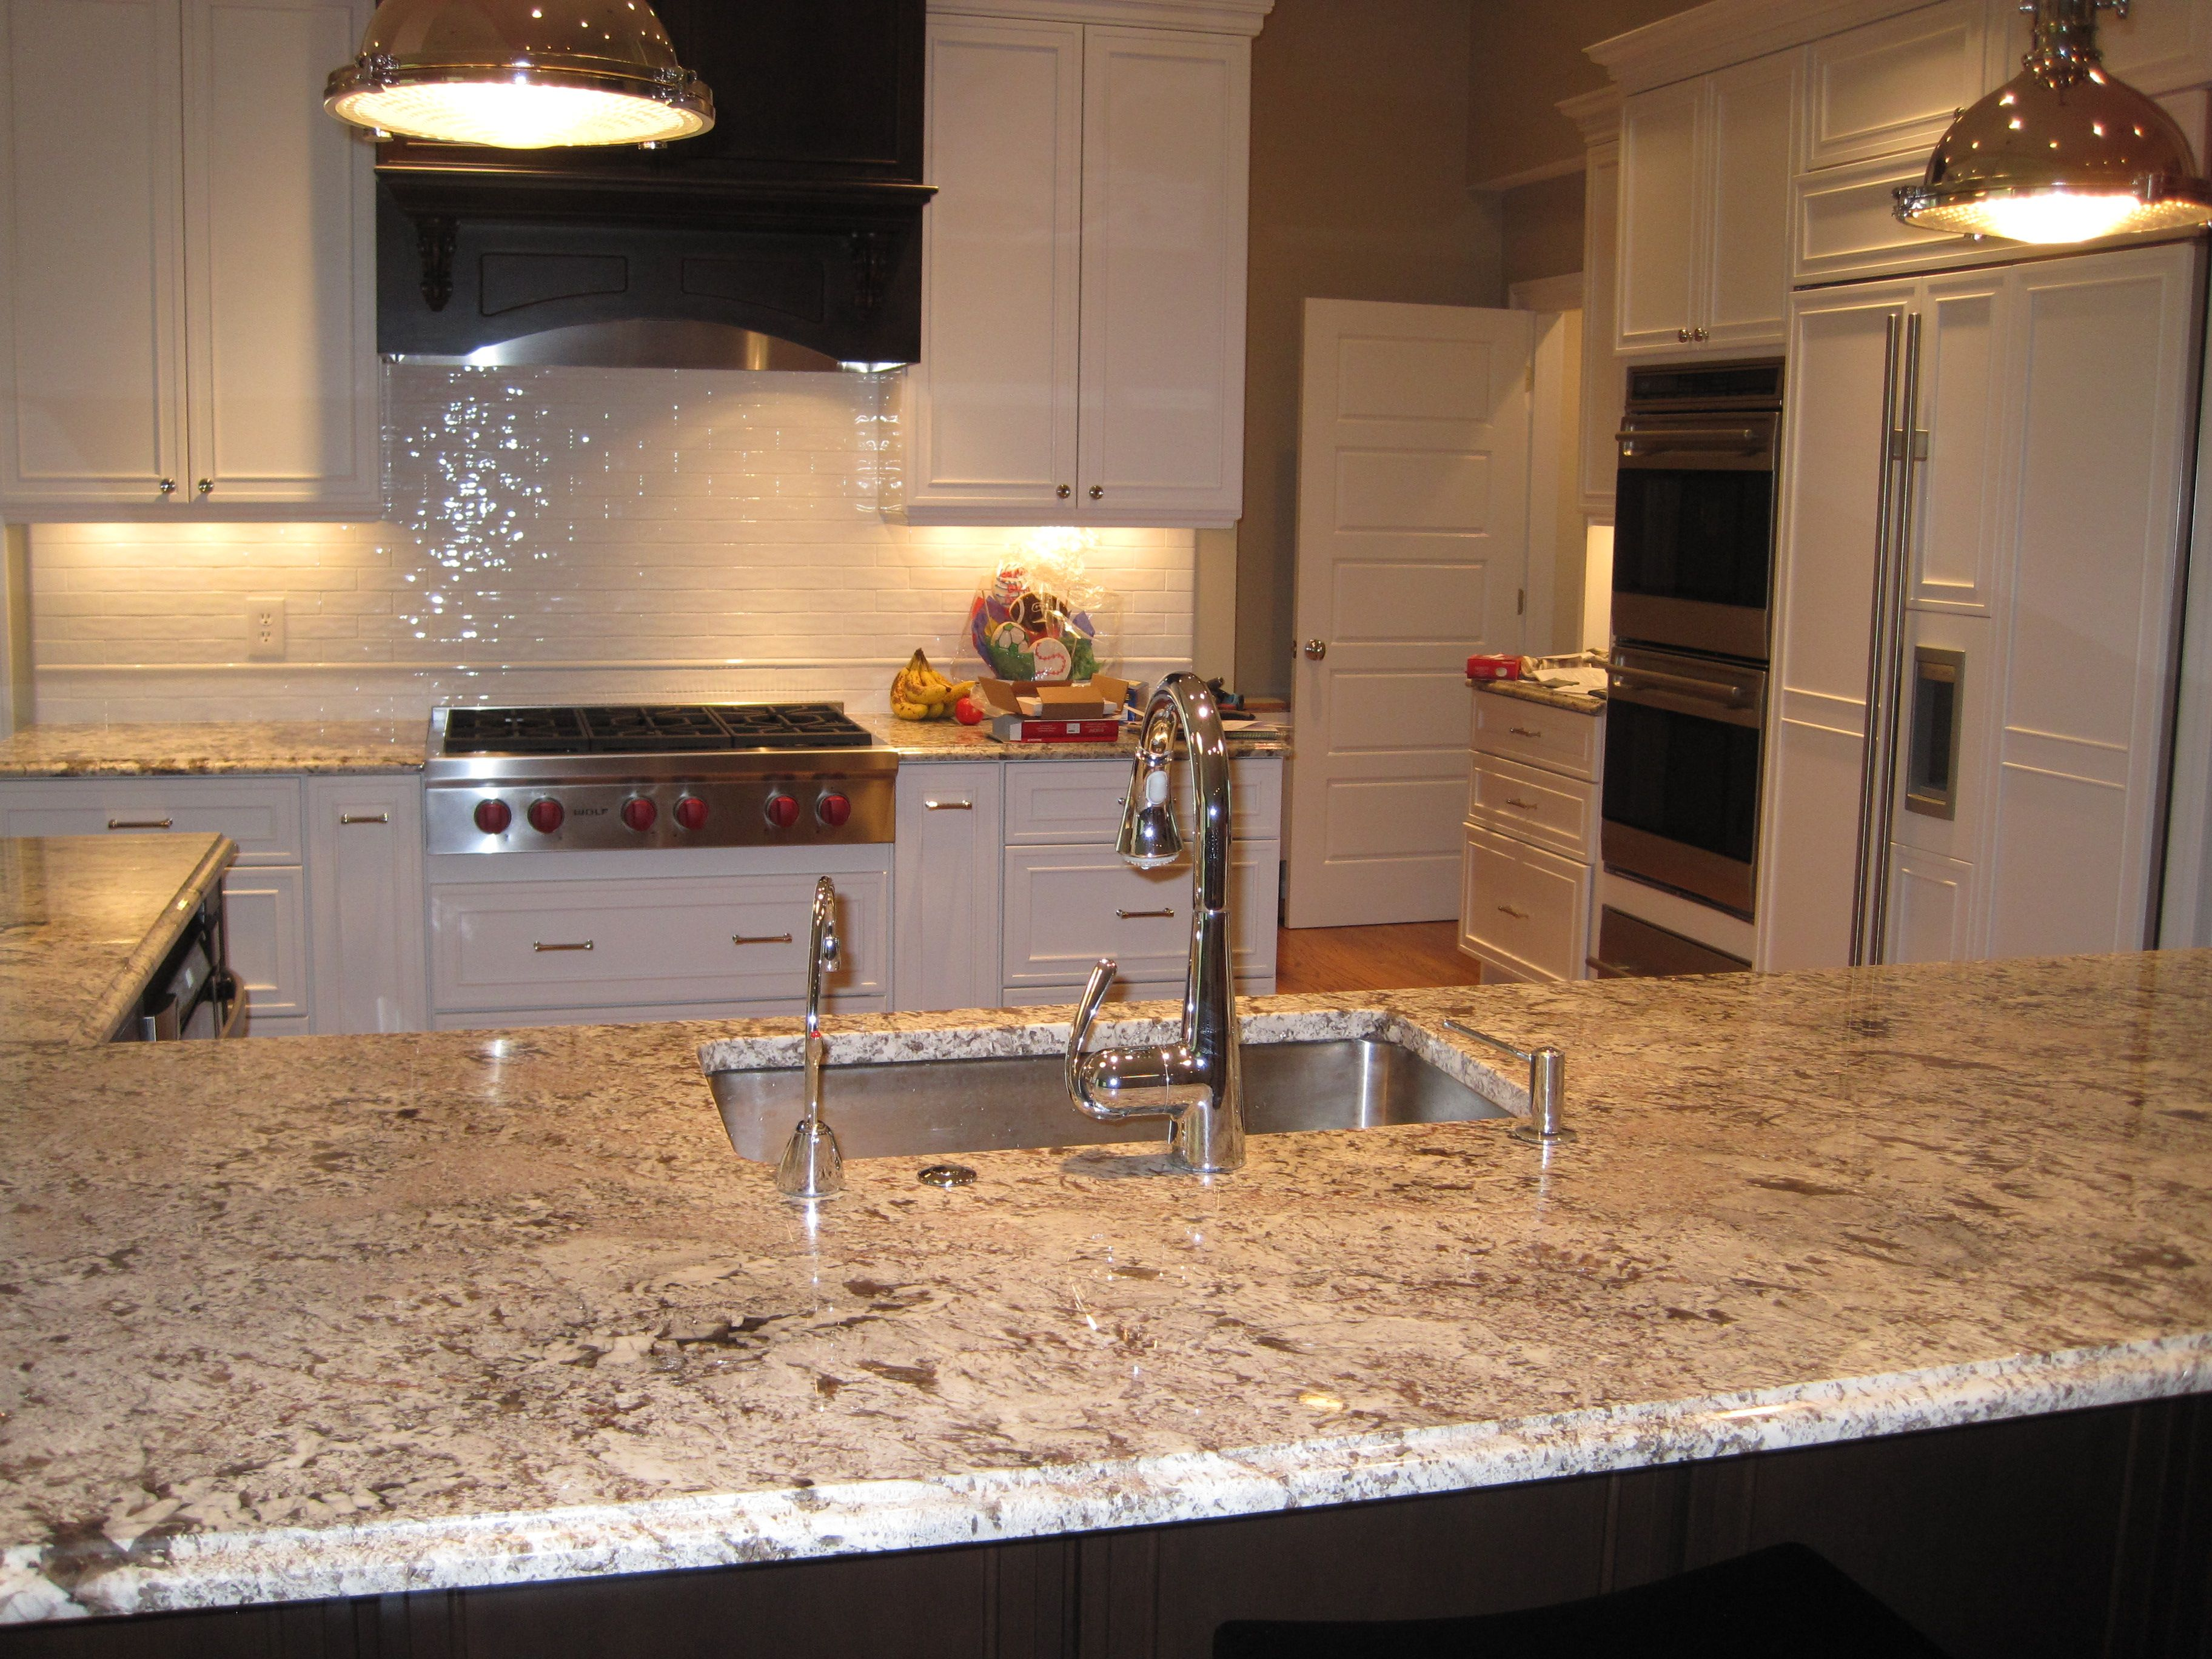 Bianco Antico Granite, dark island with white perimeter cabinets ...